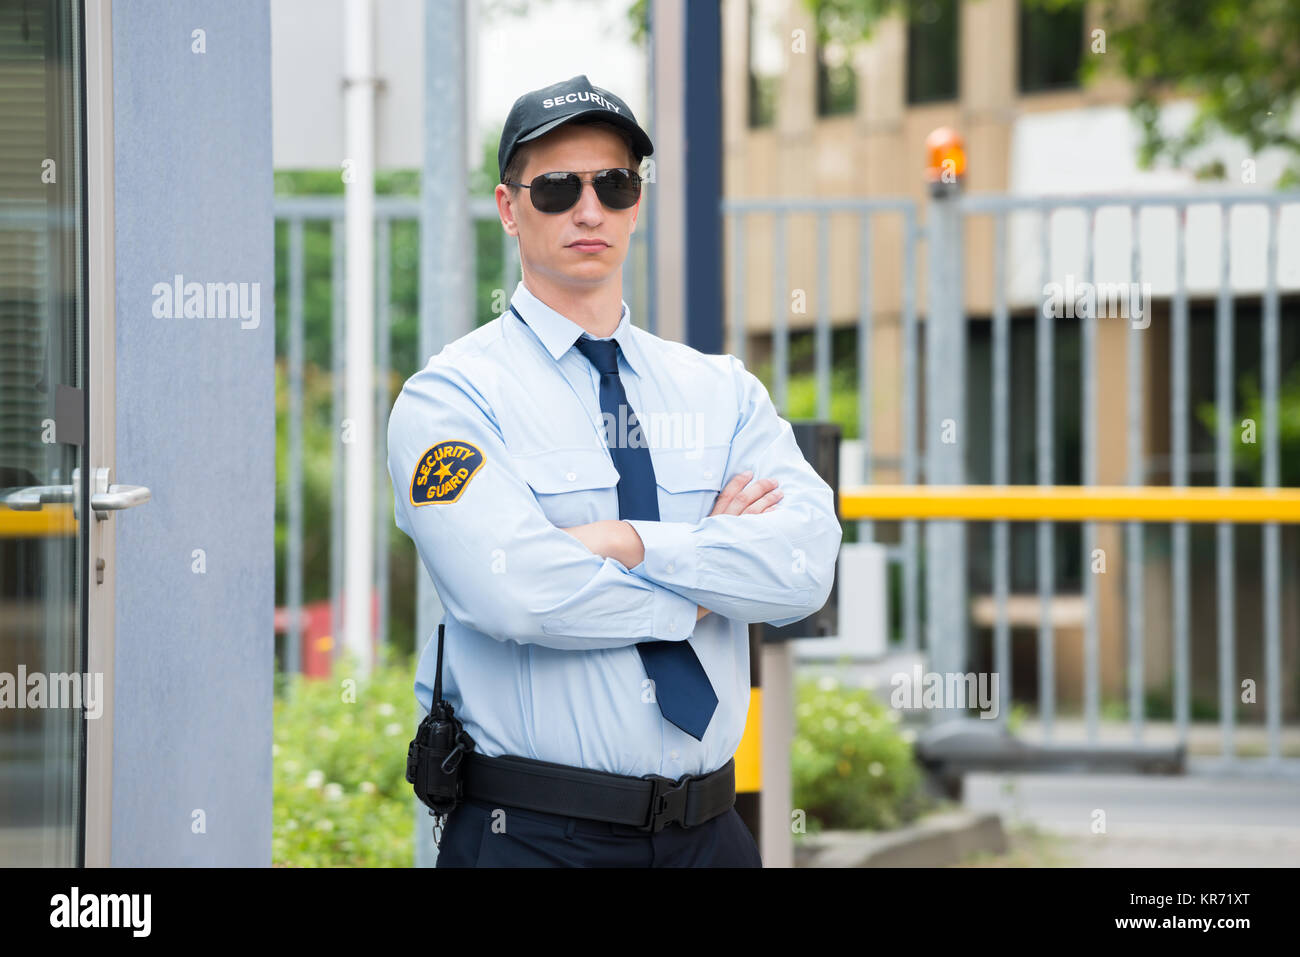 Security Guard Standing Arm Crossed - Stock Image